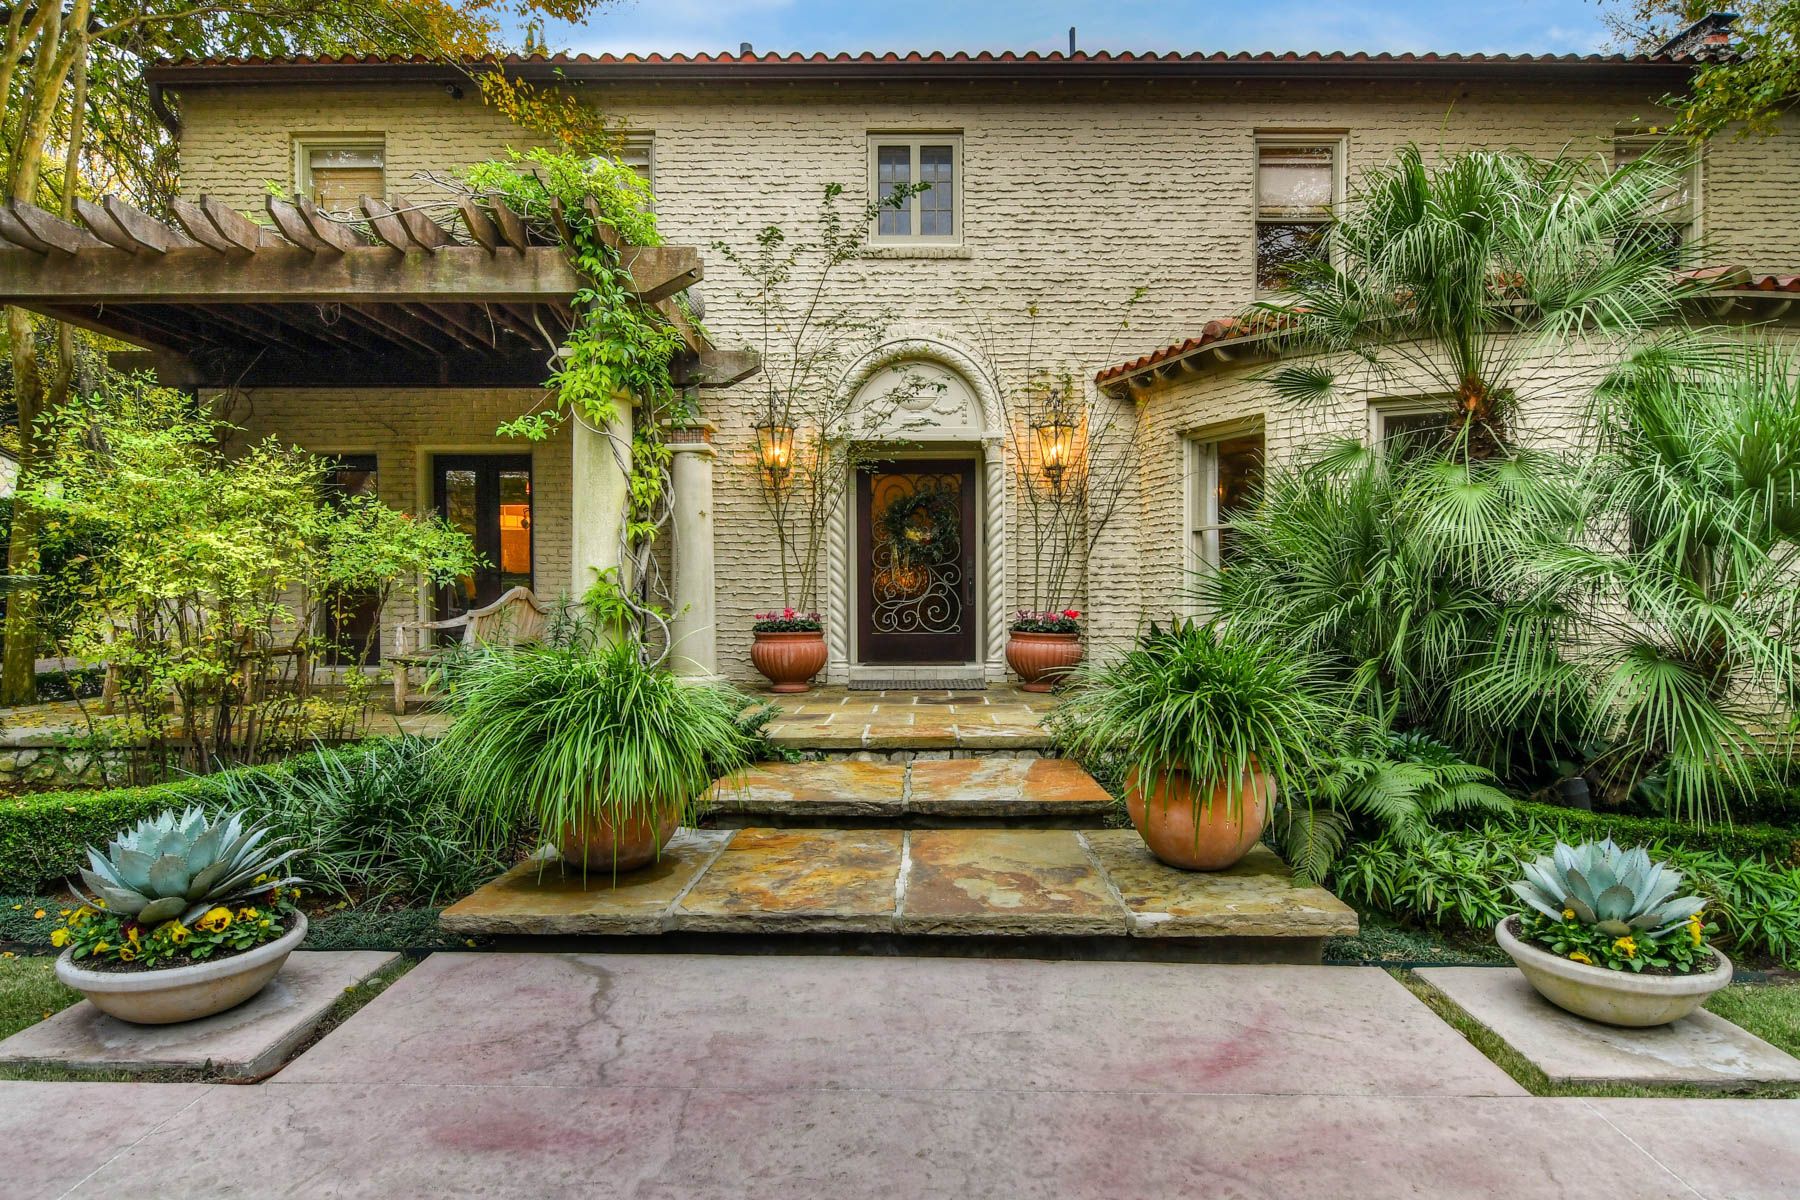 Single Family Home for Sale at Vintage 1920's Olmos Park Estate 408 Park Dr San Antonio, Texas 78212 United States